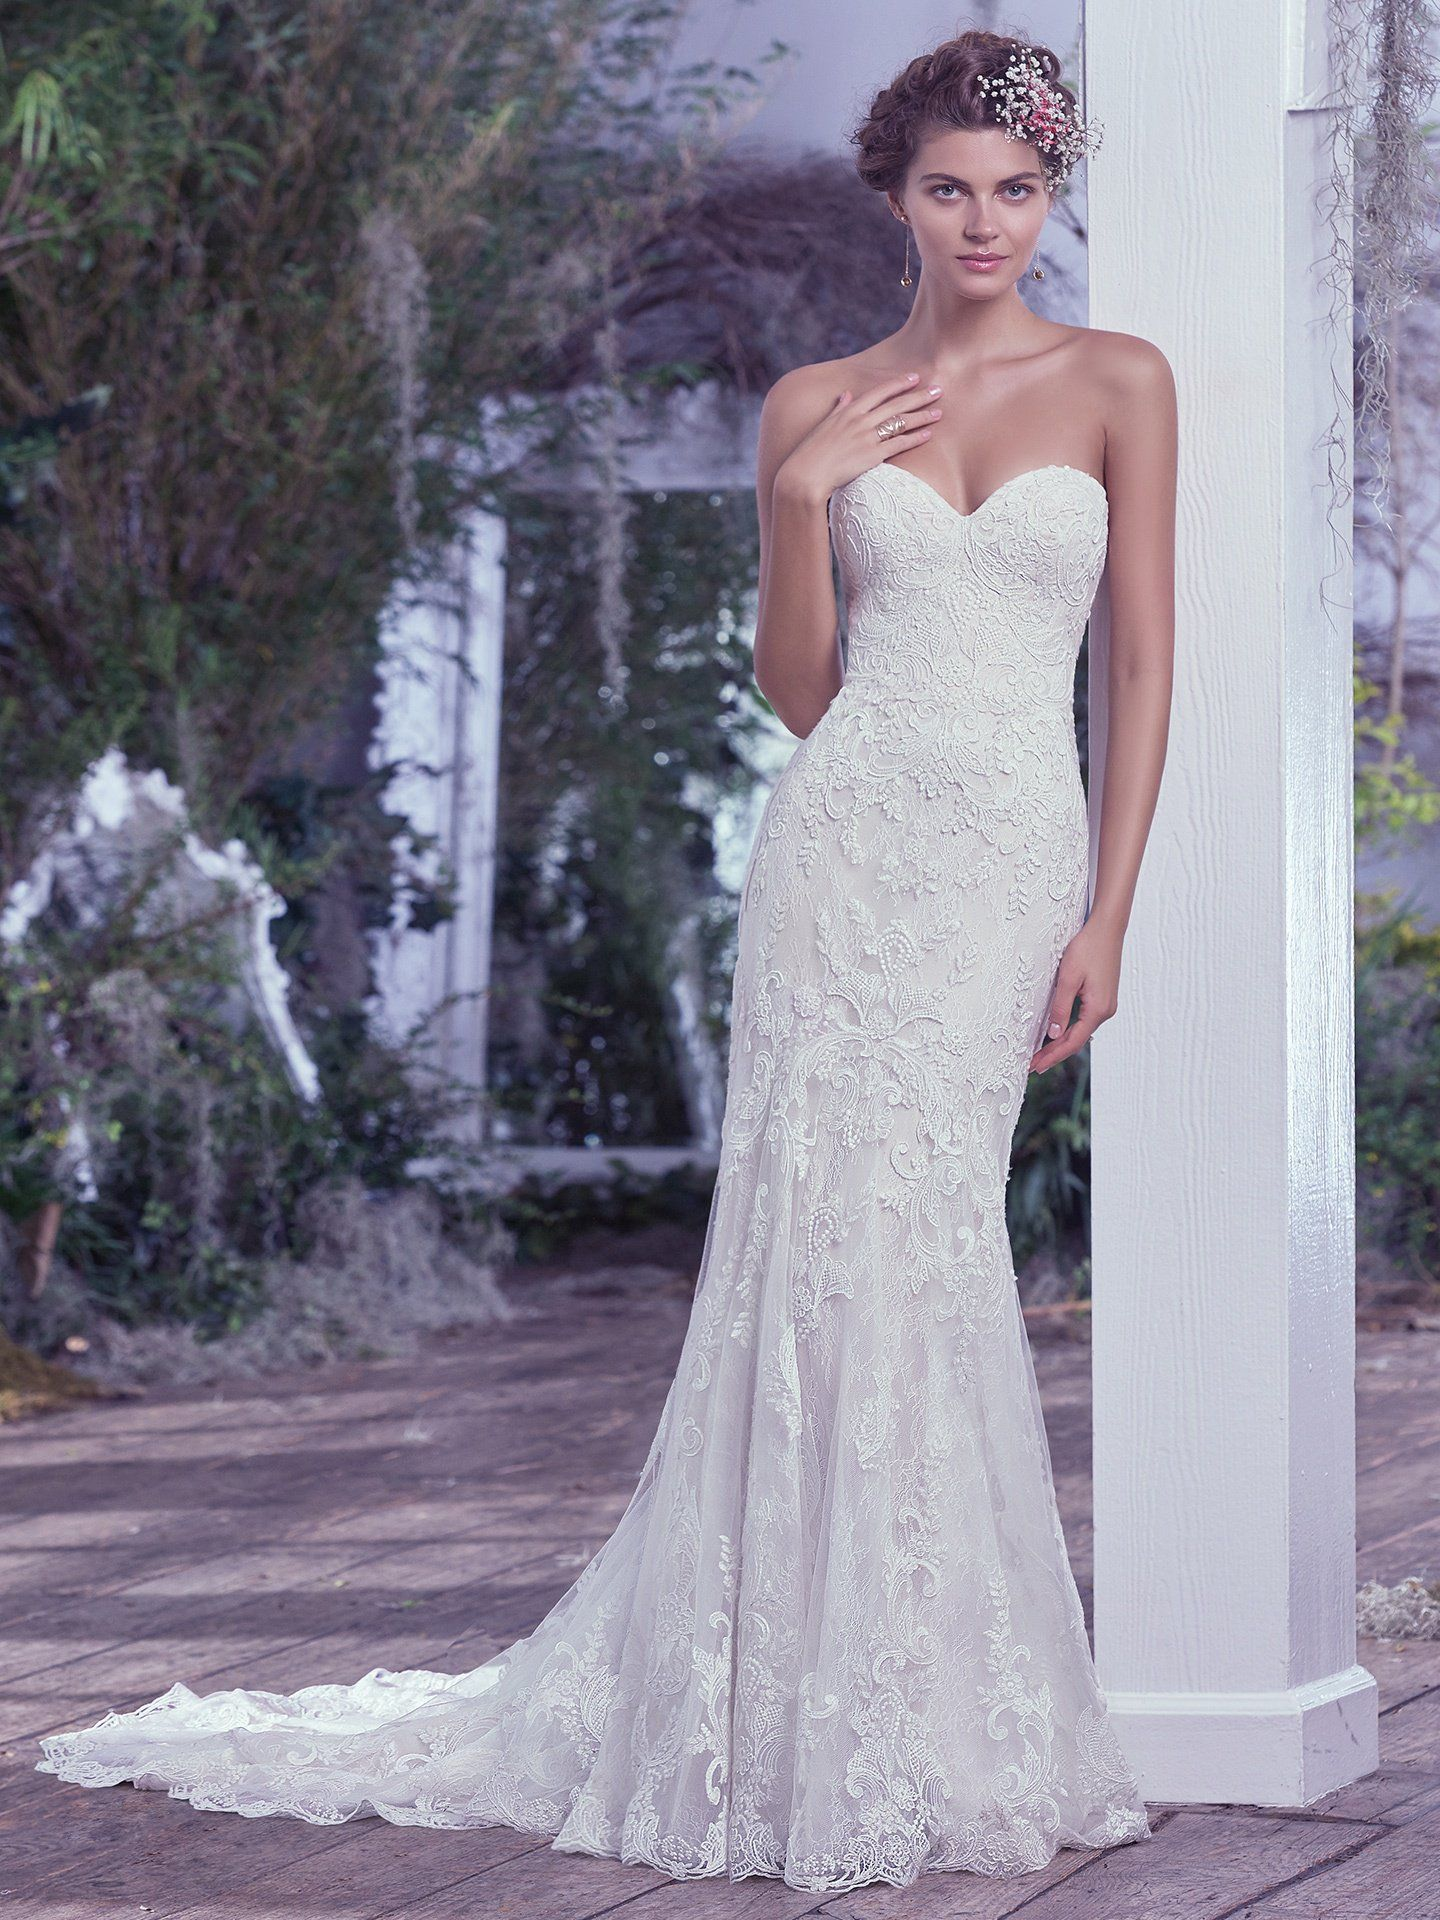 Form Fitting Strapless Wedding Dresses